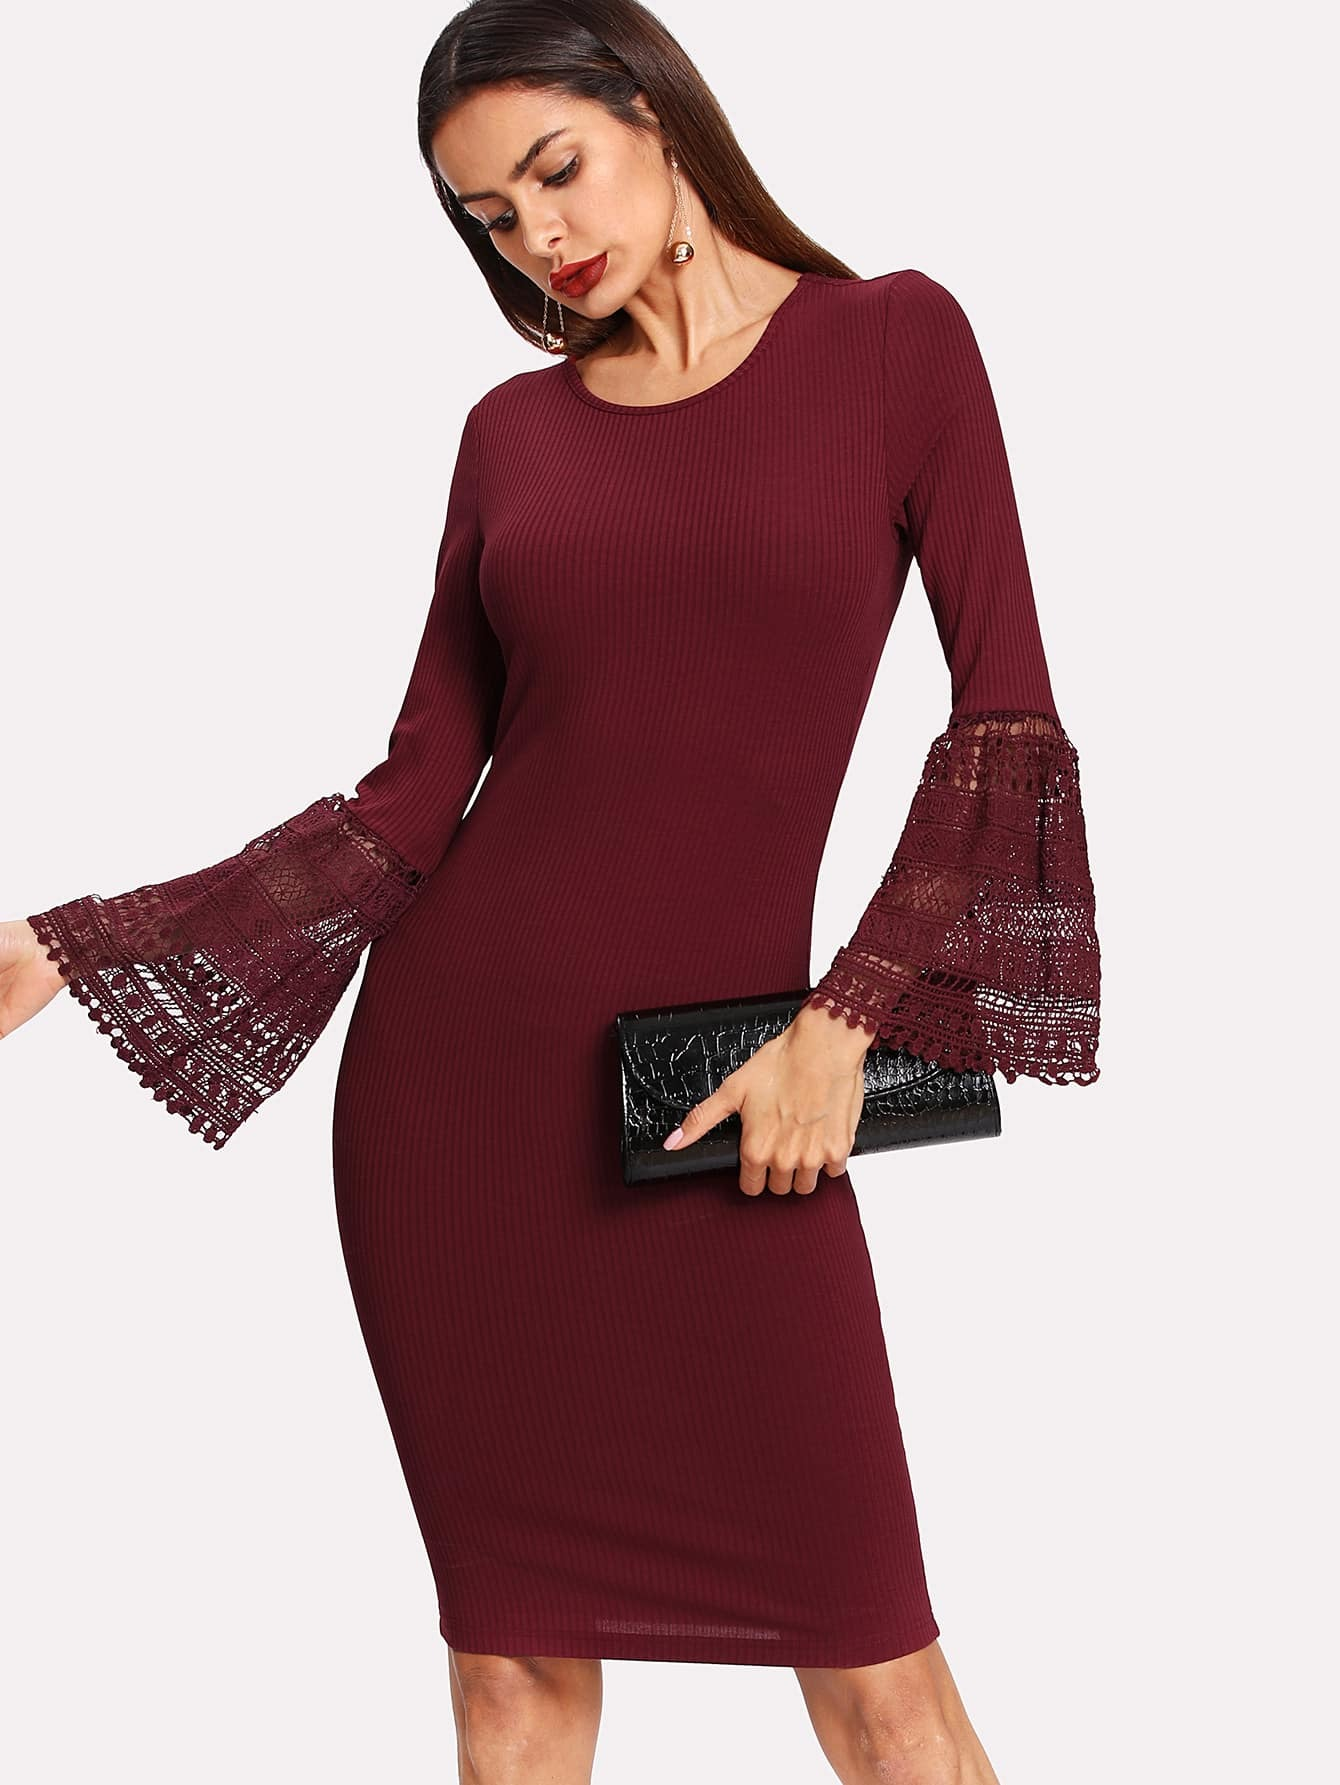 Lace Flounce Sleeve Ribbed Pencil Dress pearl detail flounce sleeve pencil dress